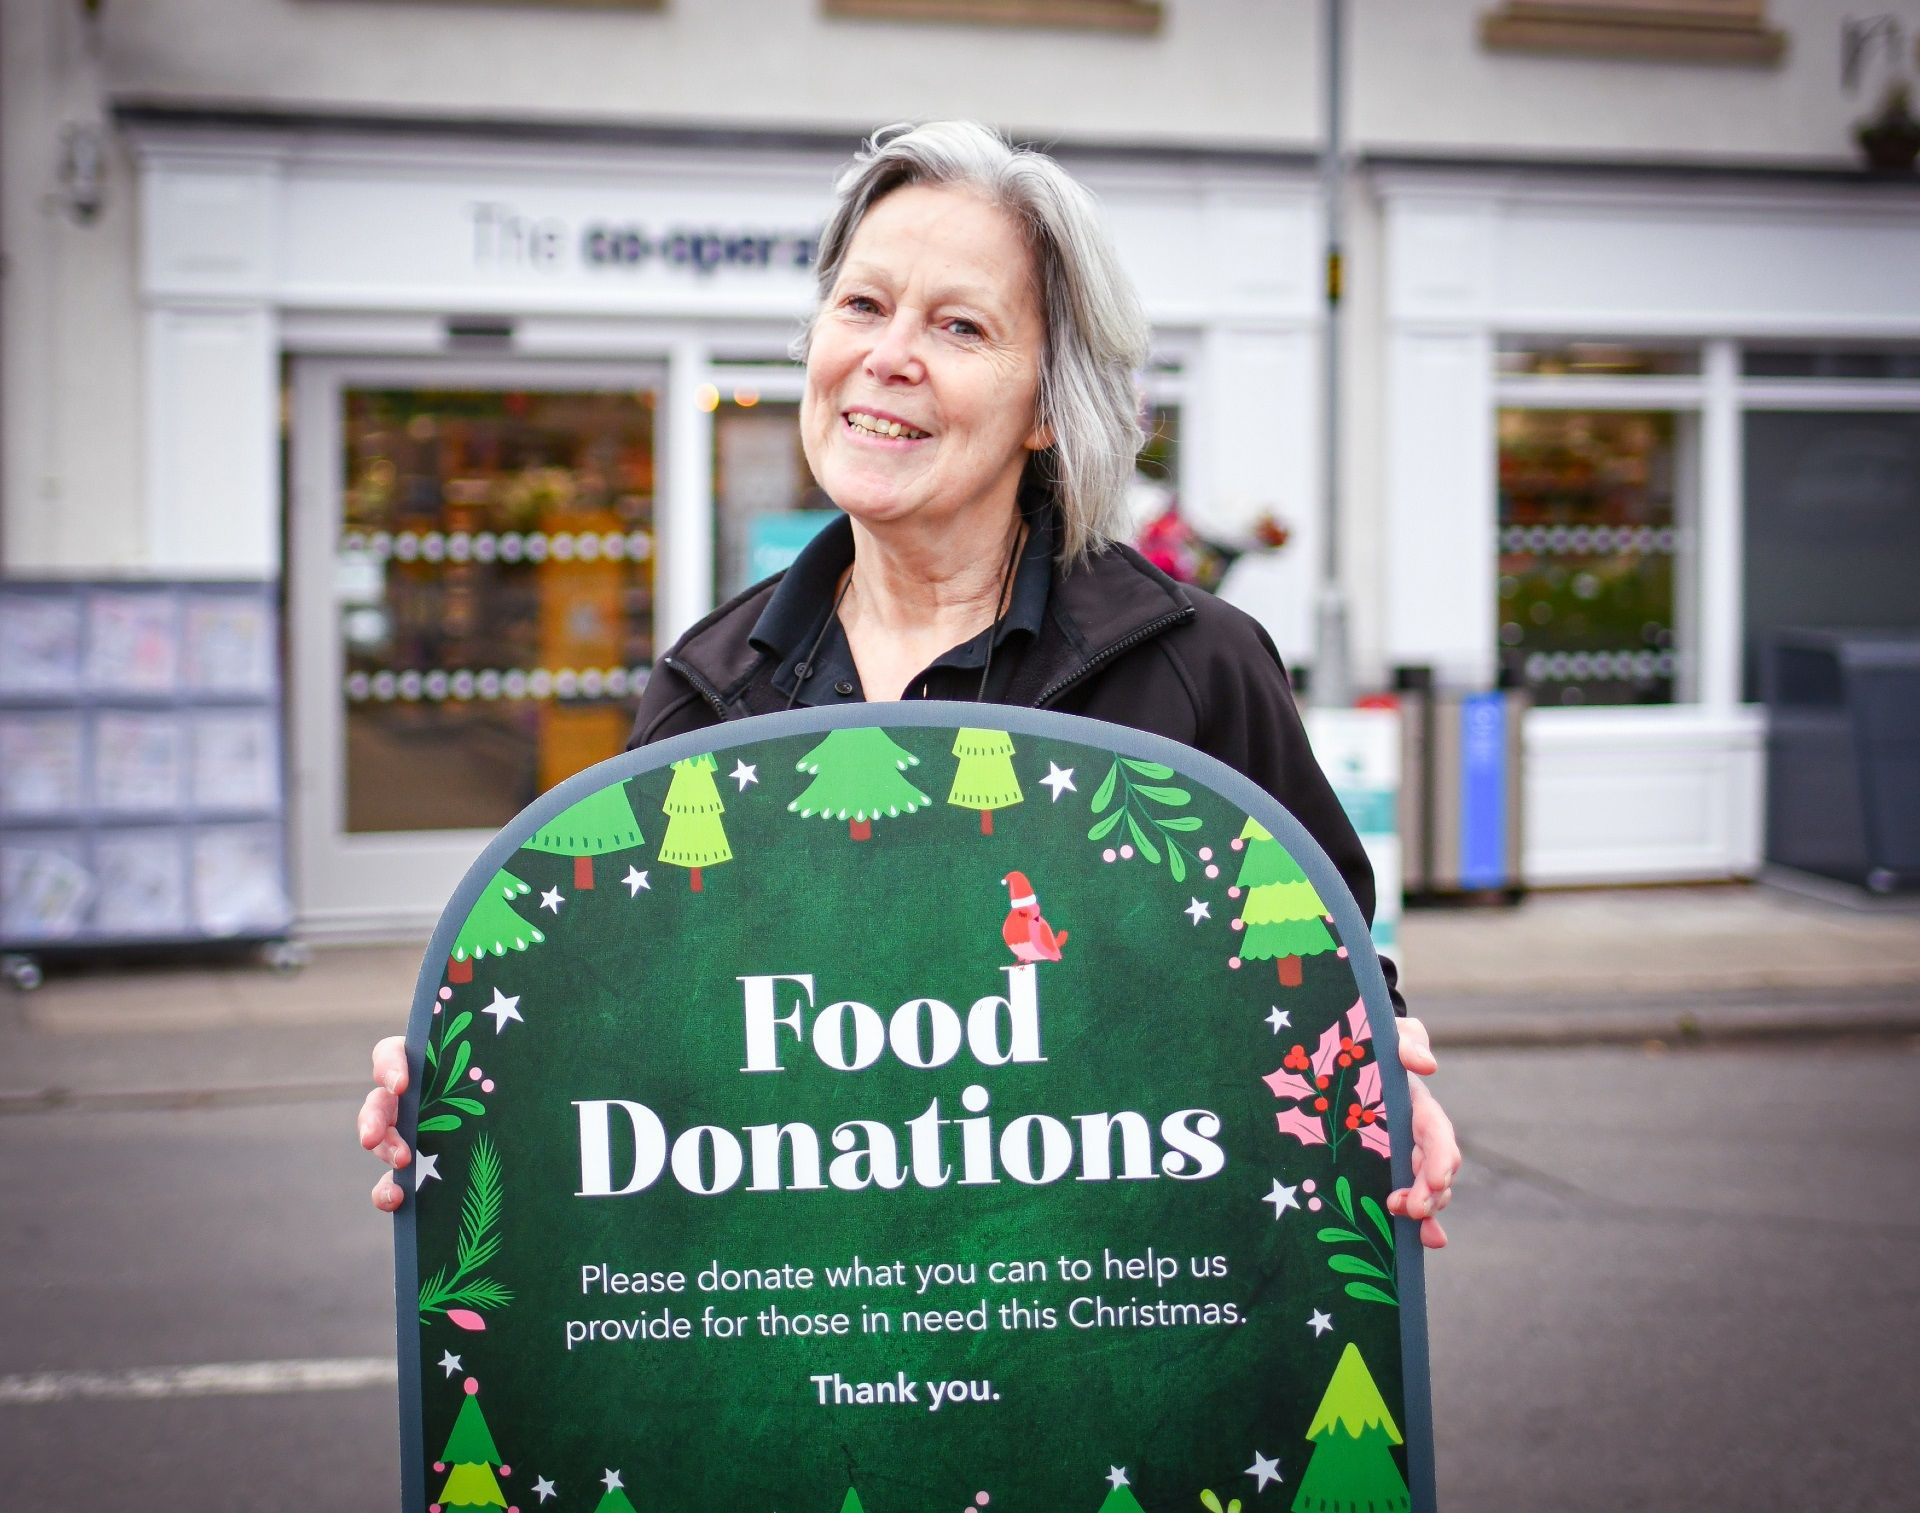 Customers donate enough food to create over 22,000 meals through Christmas appeal